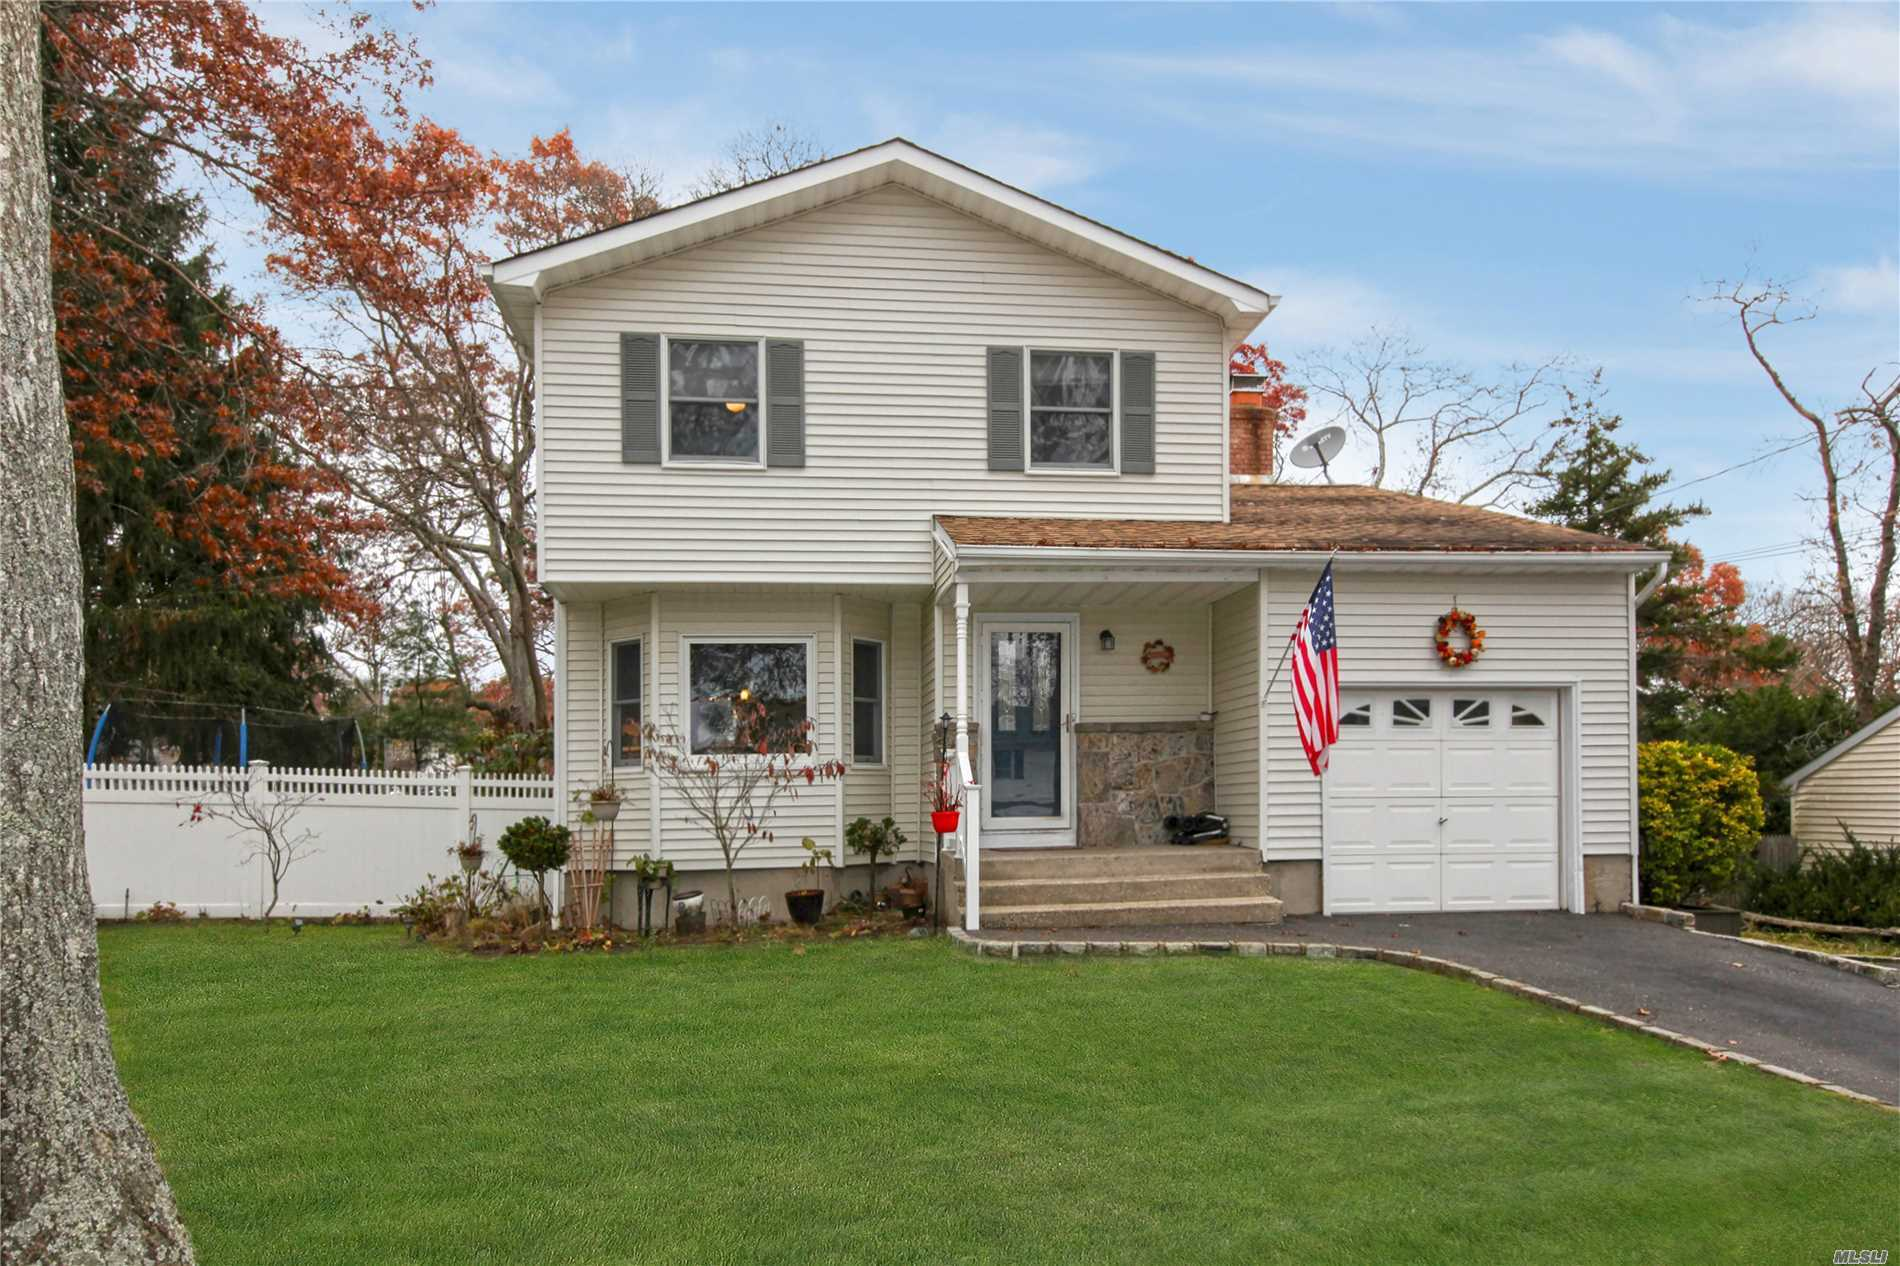 Beautiful Colonial In The Village Of Lake Grove Featuring Hardwood Floors, Kitchen W/ Granite Countertop And Eating Area, Beautiful Den With Fireplace, Nice Sized Master, Finished Basement With Nice Space To Hang Out And Laundry Room. This Home Shows Very Nicely. Very Motivated Sellers